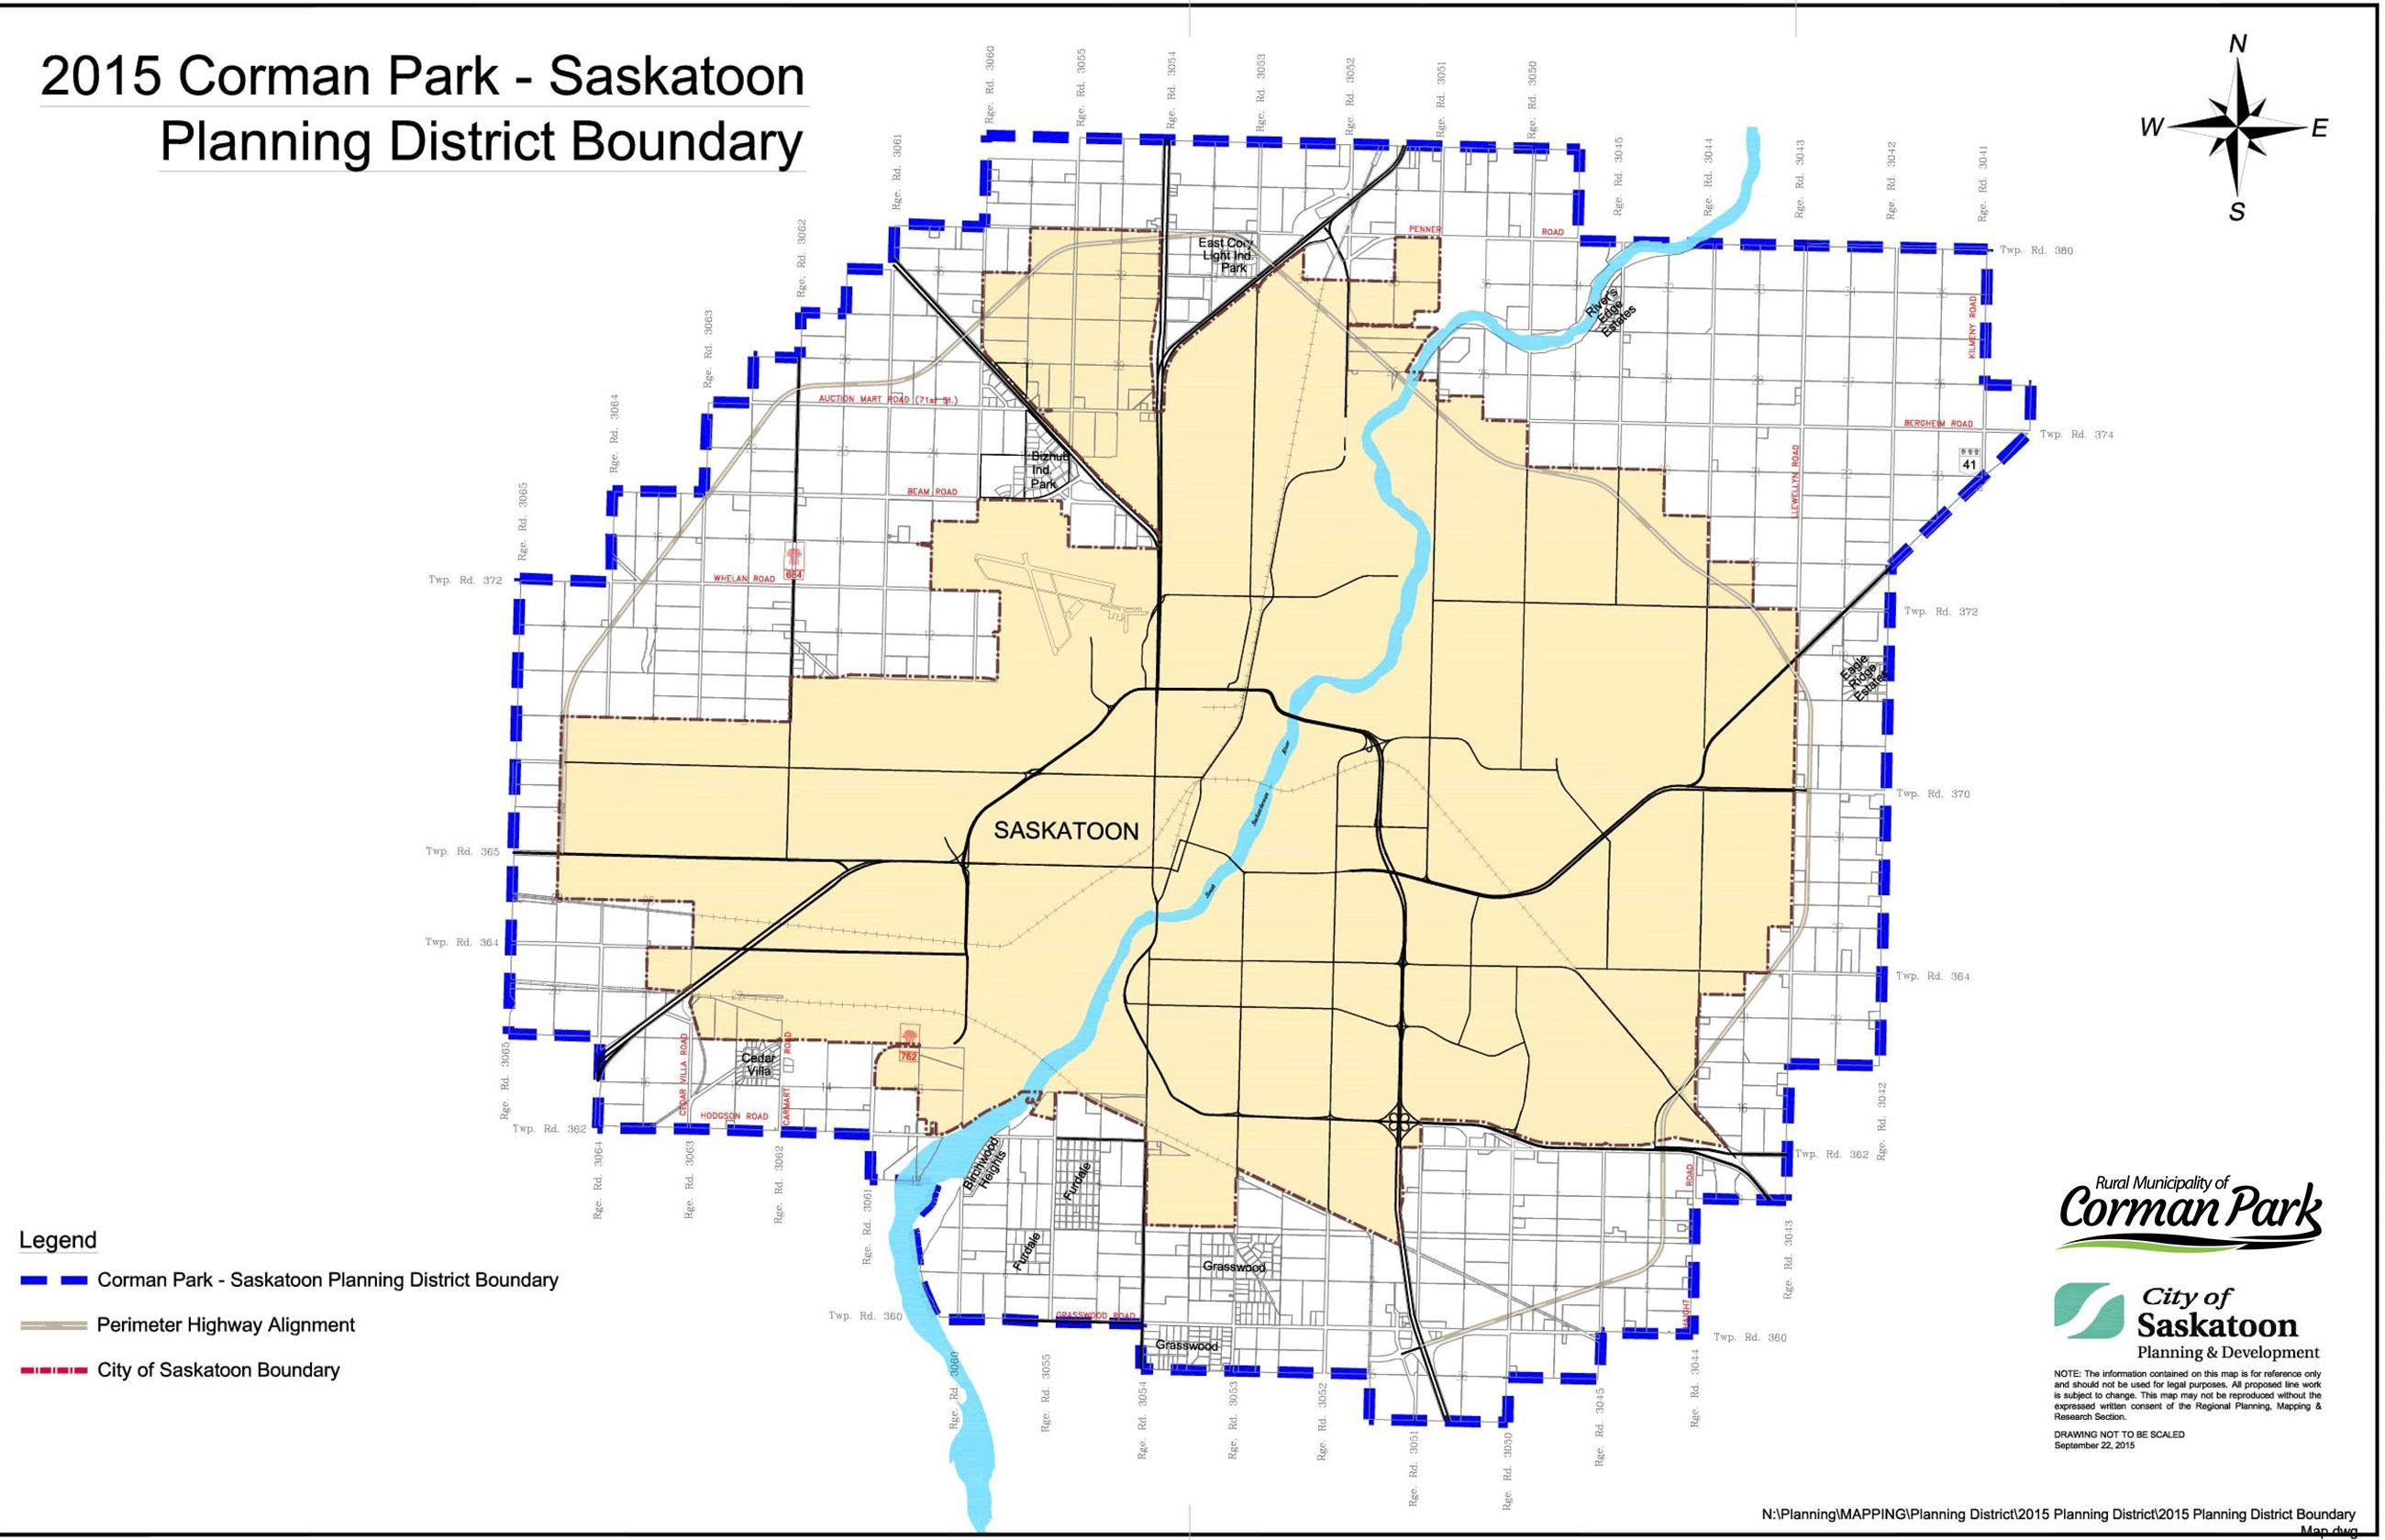 Corman Park - Saskatoon Planning District 2015 Boundary